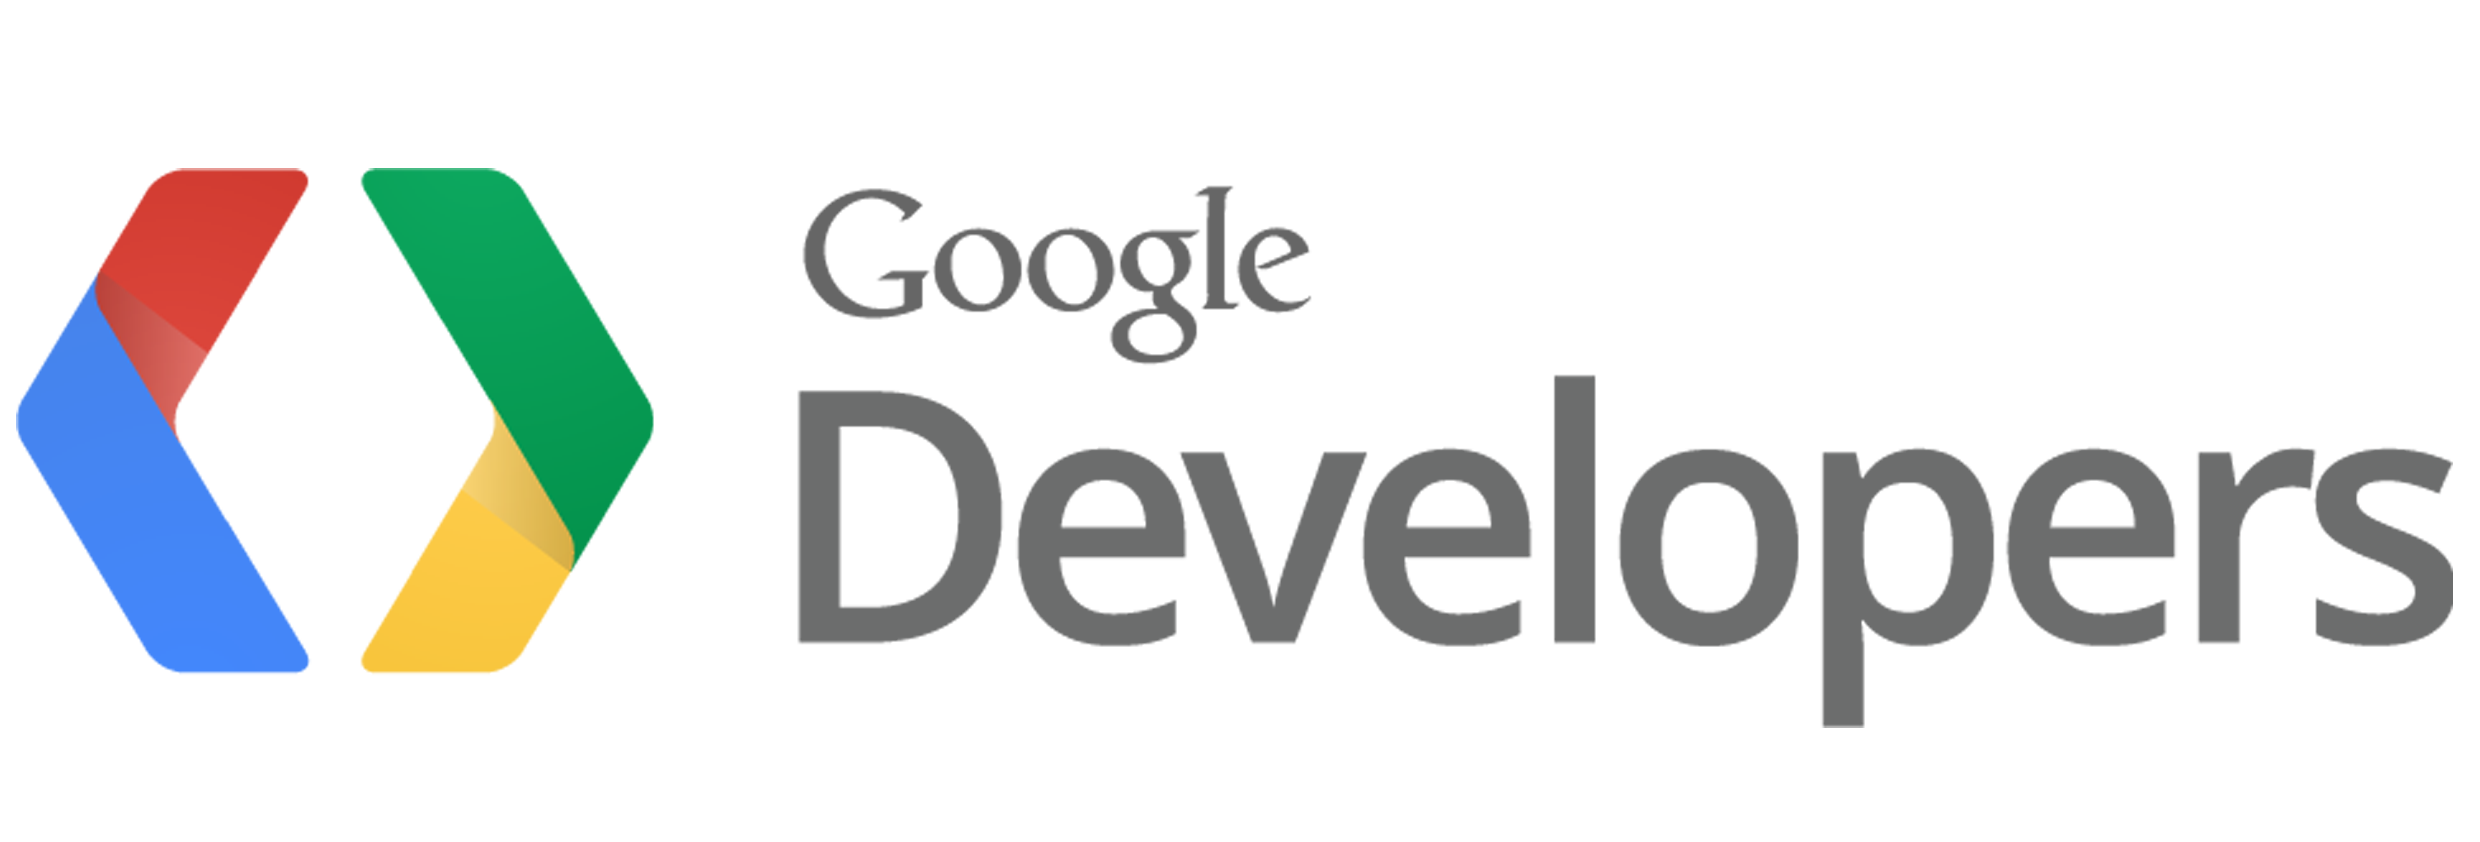 GoogleDevelopers